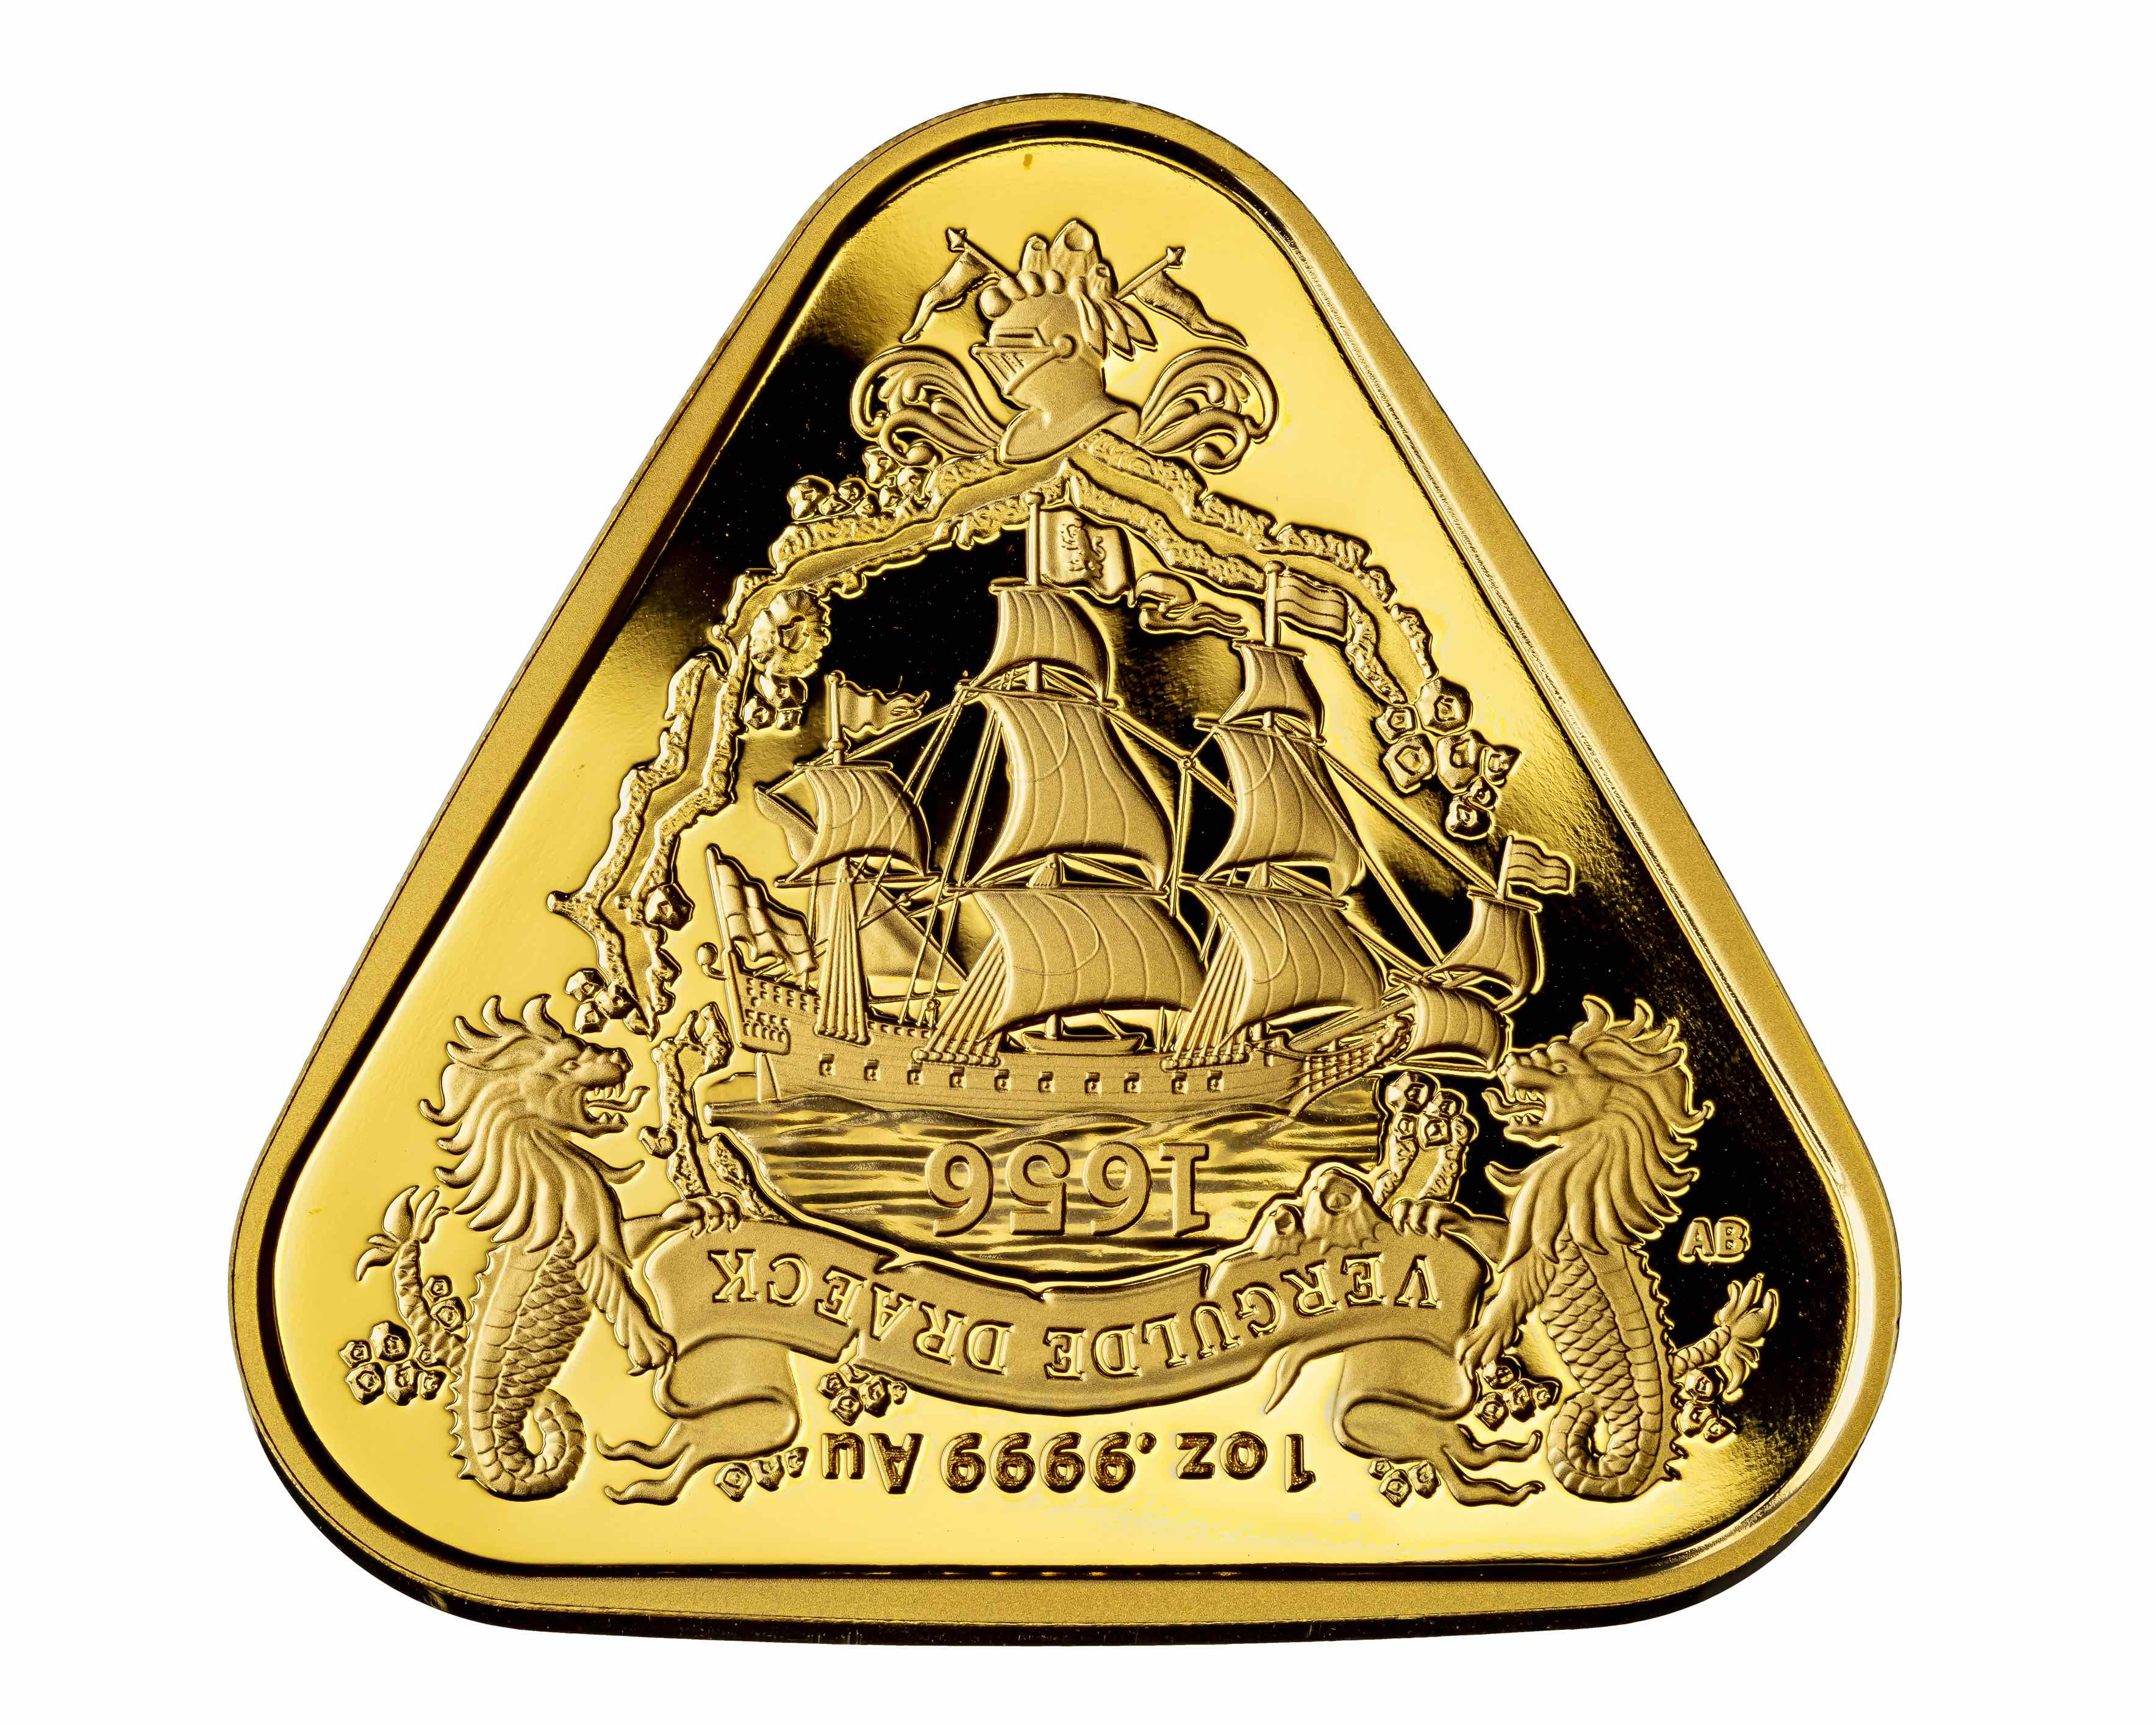 2020 1 oz Australian Shipwreck Series - Vergulde Draeck (Gilt Dragon) .9999 Gold Coin BU